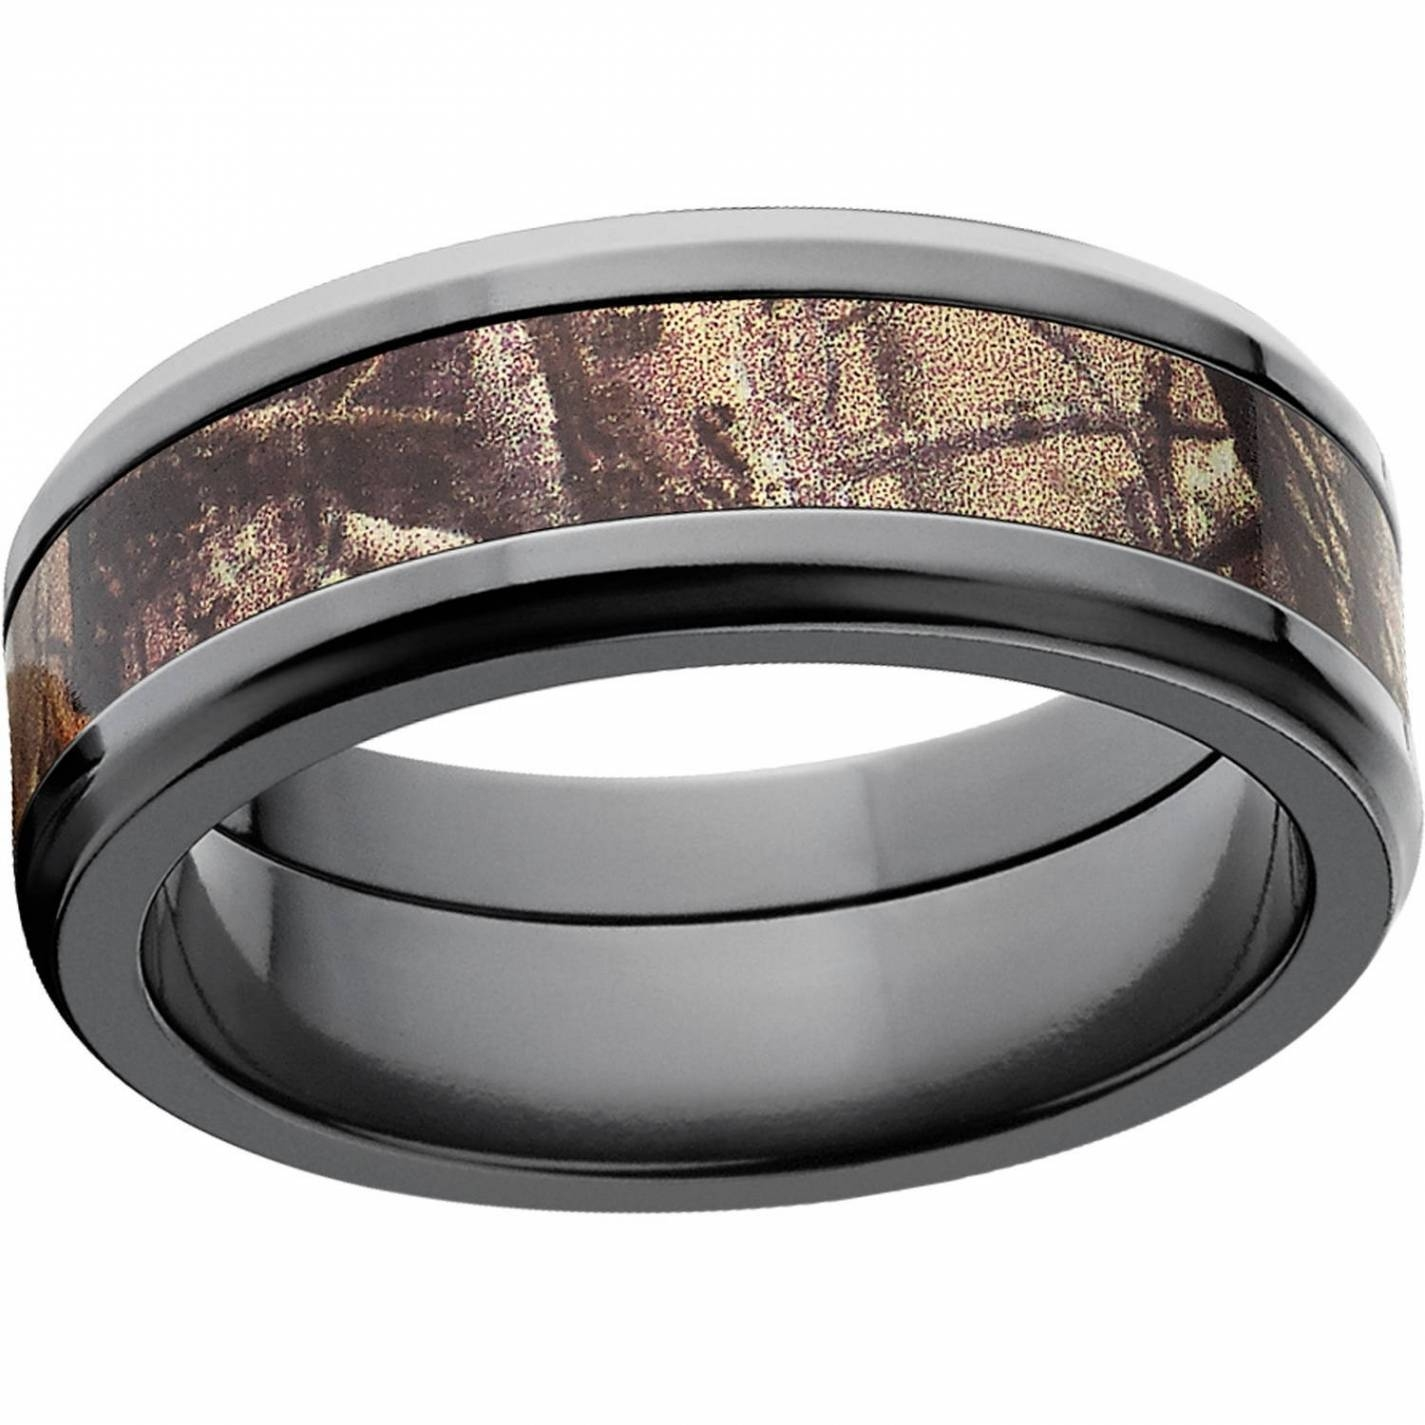 Inspirational Walmart Jewelry Mens Wedding Bands – Weddingbandsin (View 4 of 15)